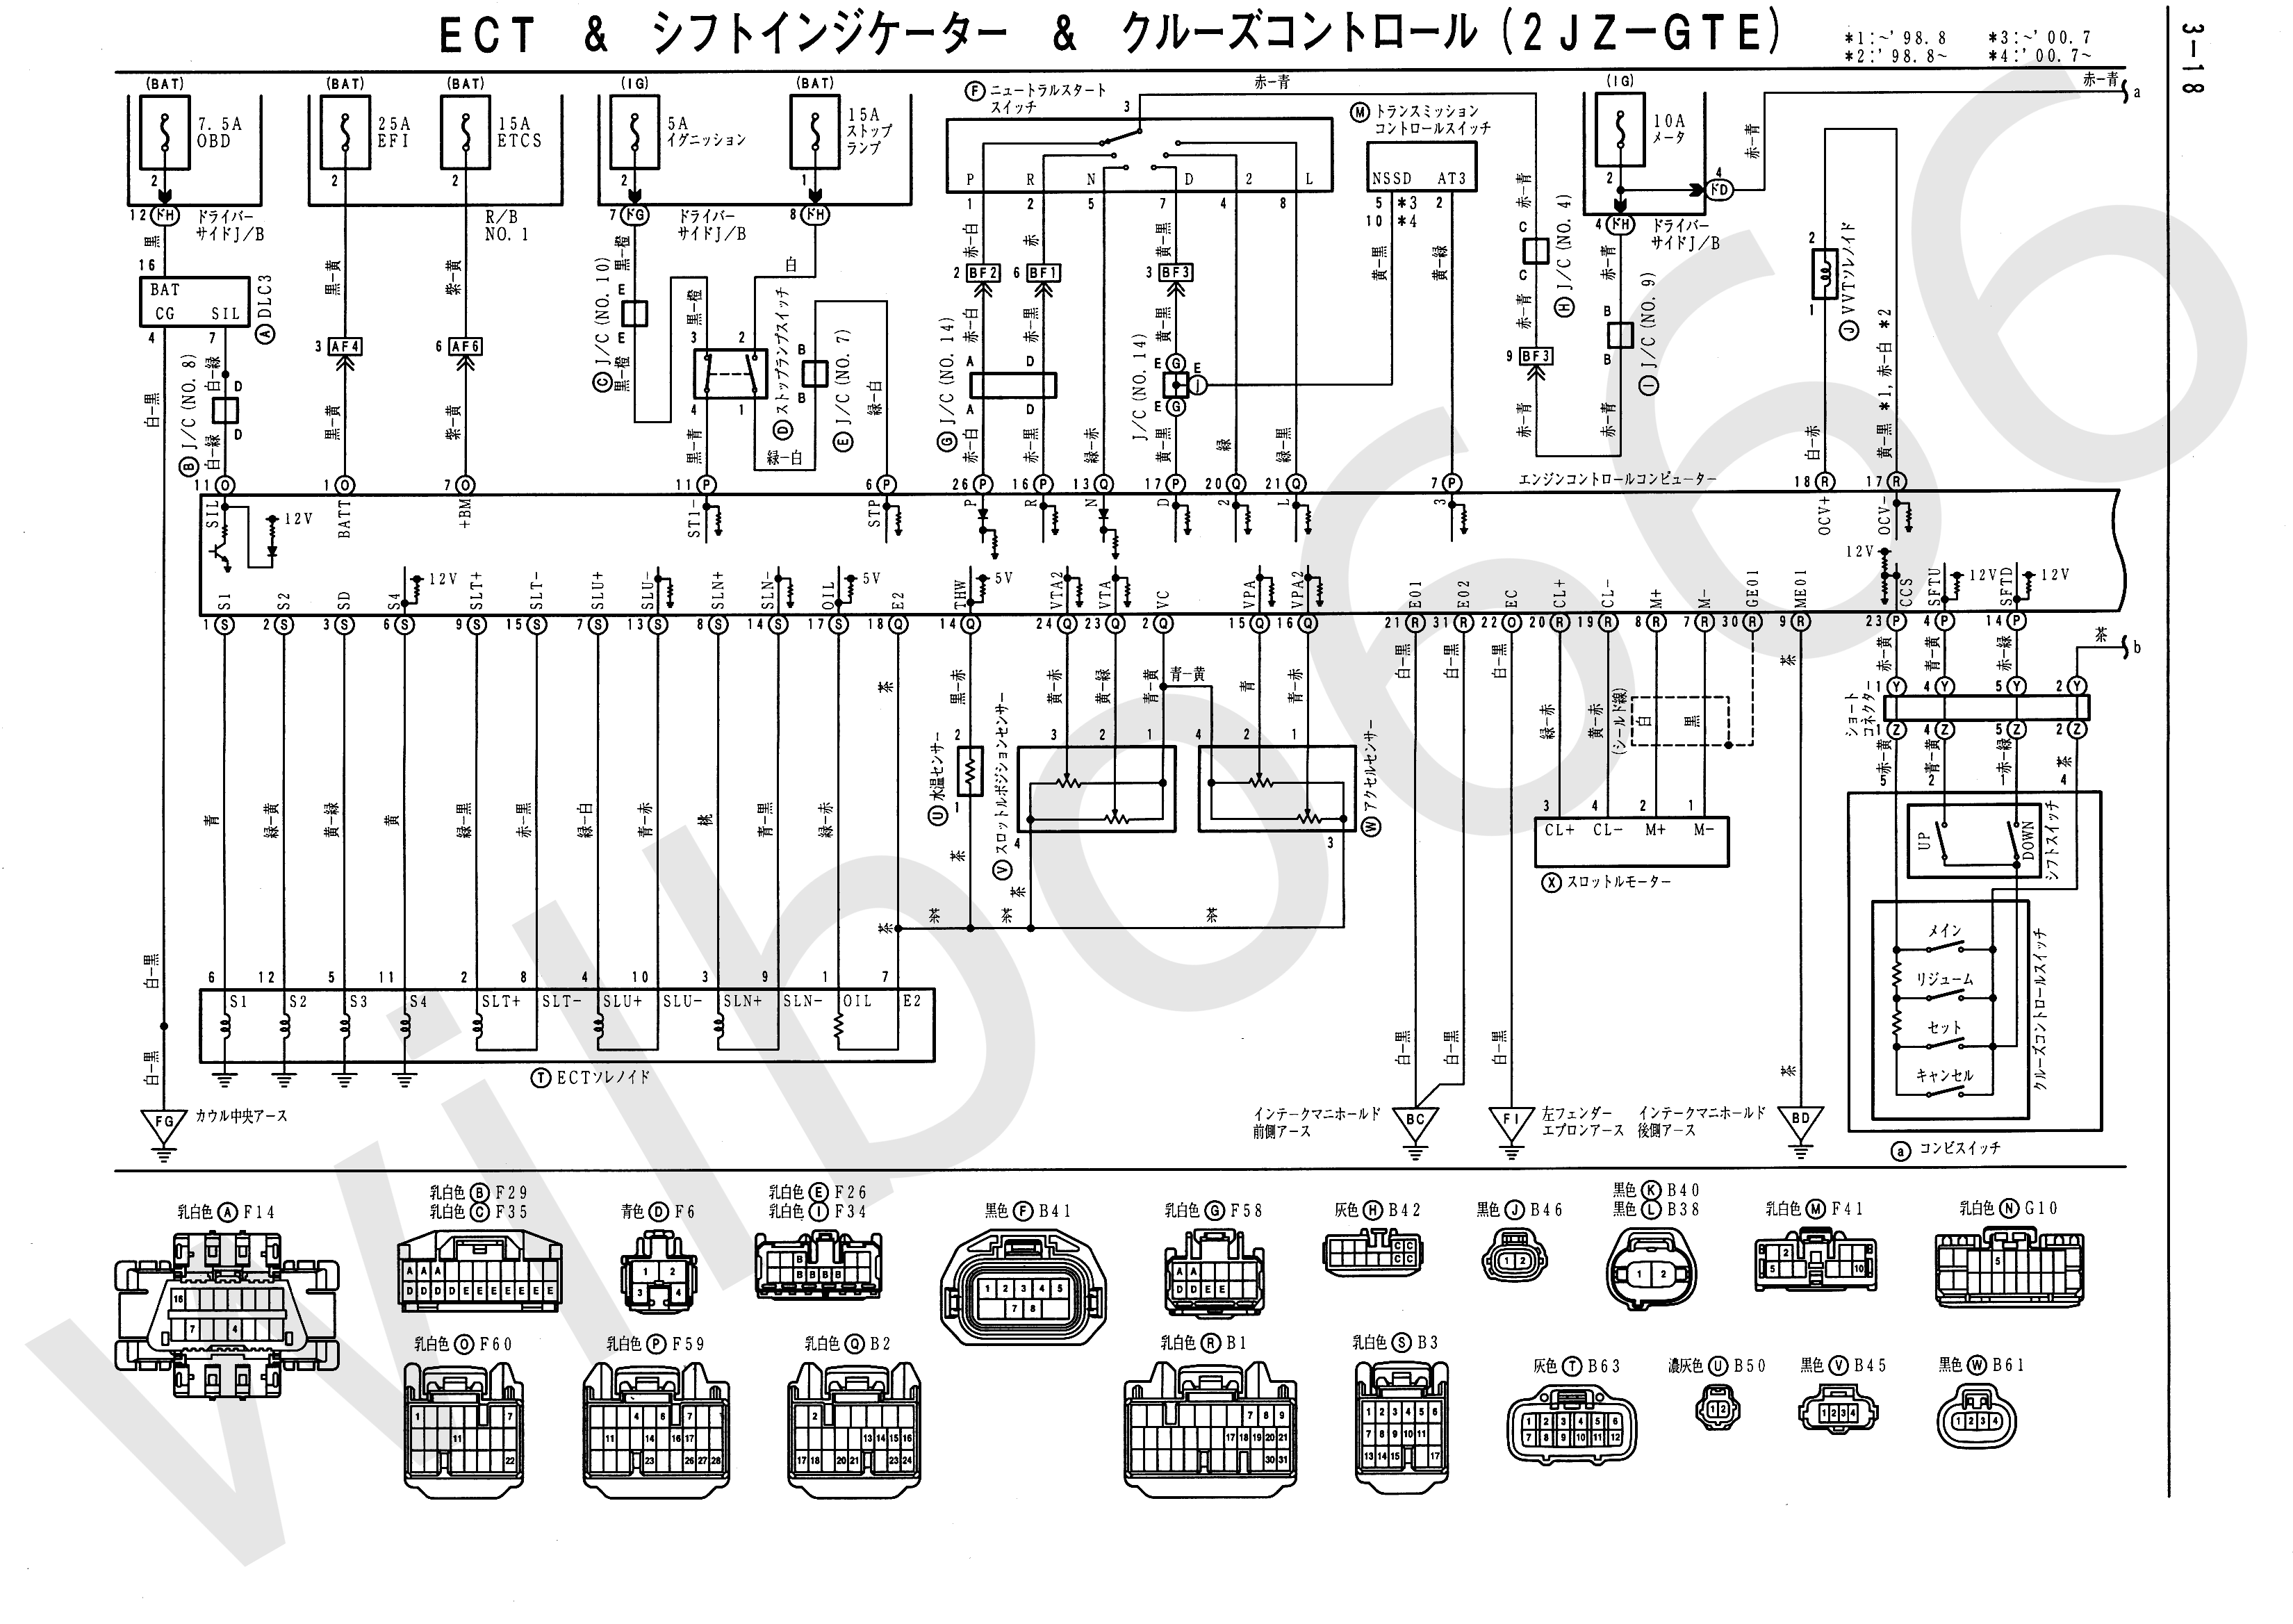 1jz Crank Sensor Wiring Wire Center Diagram Wilbo666 2jz Gte Vvti Jzs161 Aristo Engine Rh Pbworks Com Gm Problems Knock